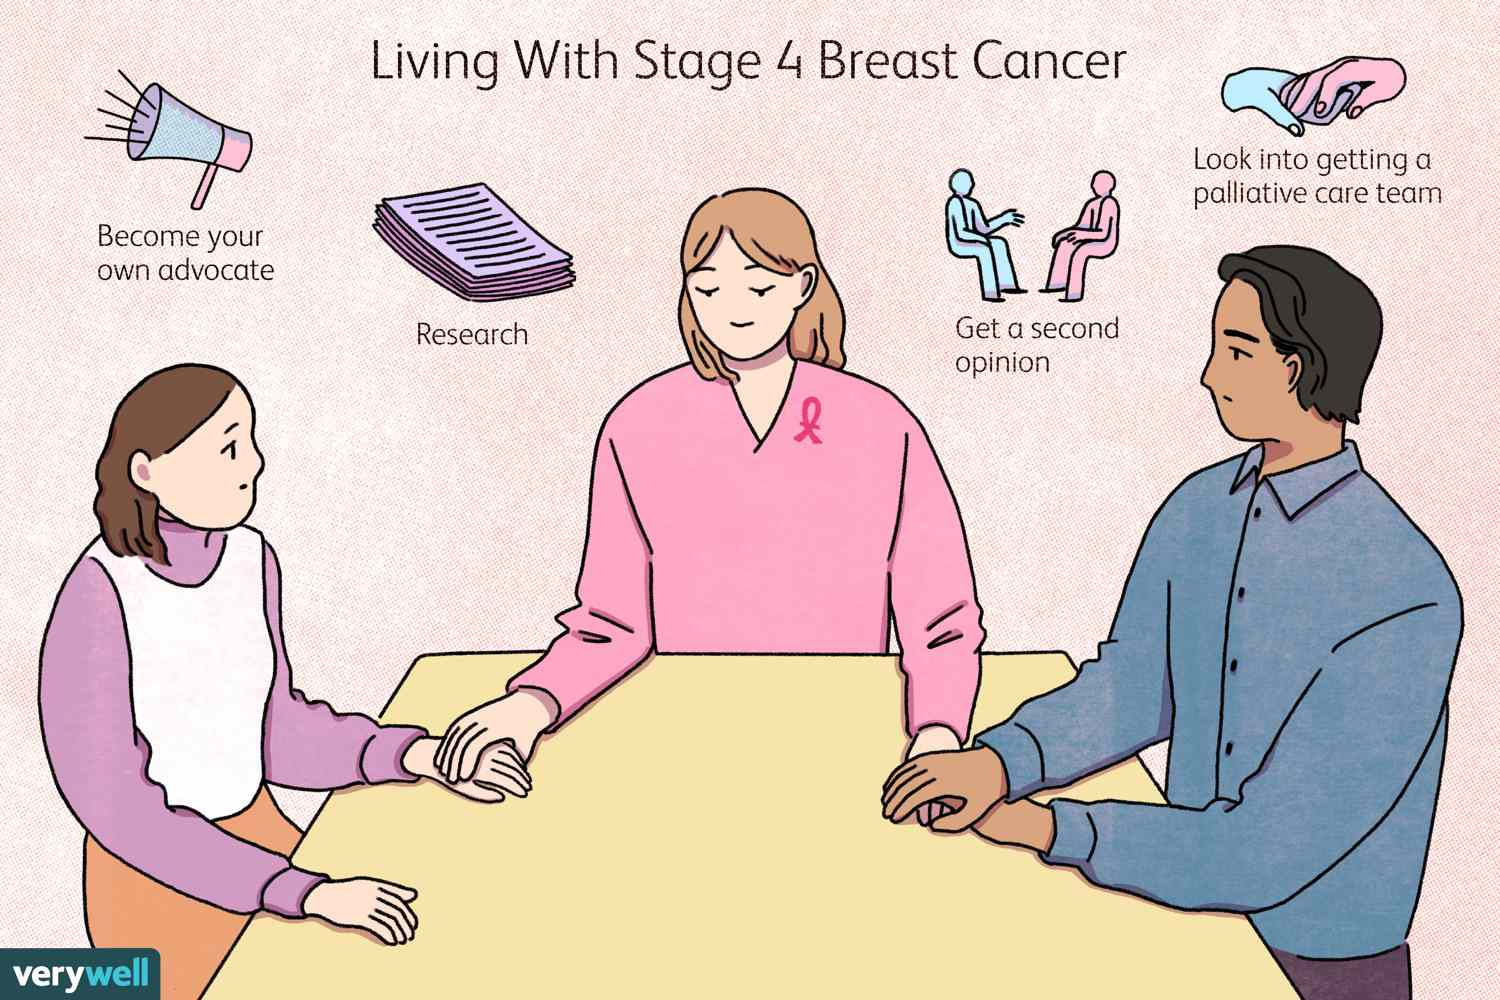 Living with stage 4 breast cancer.